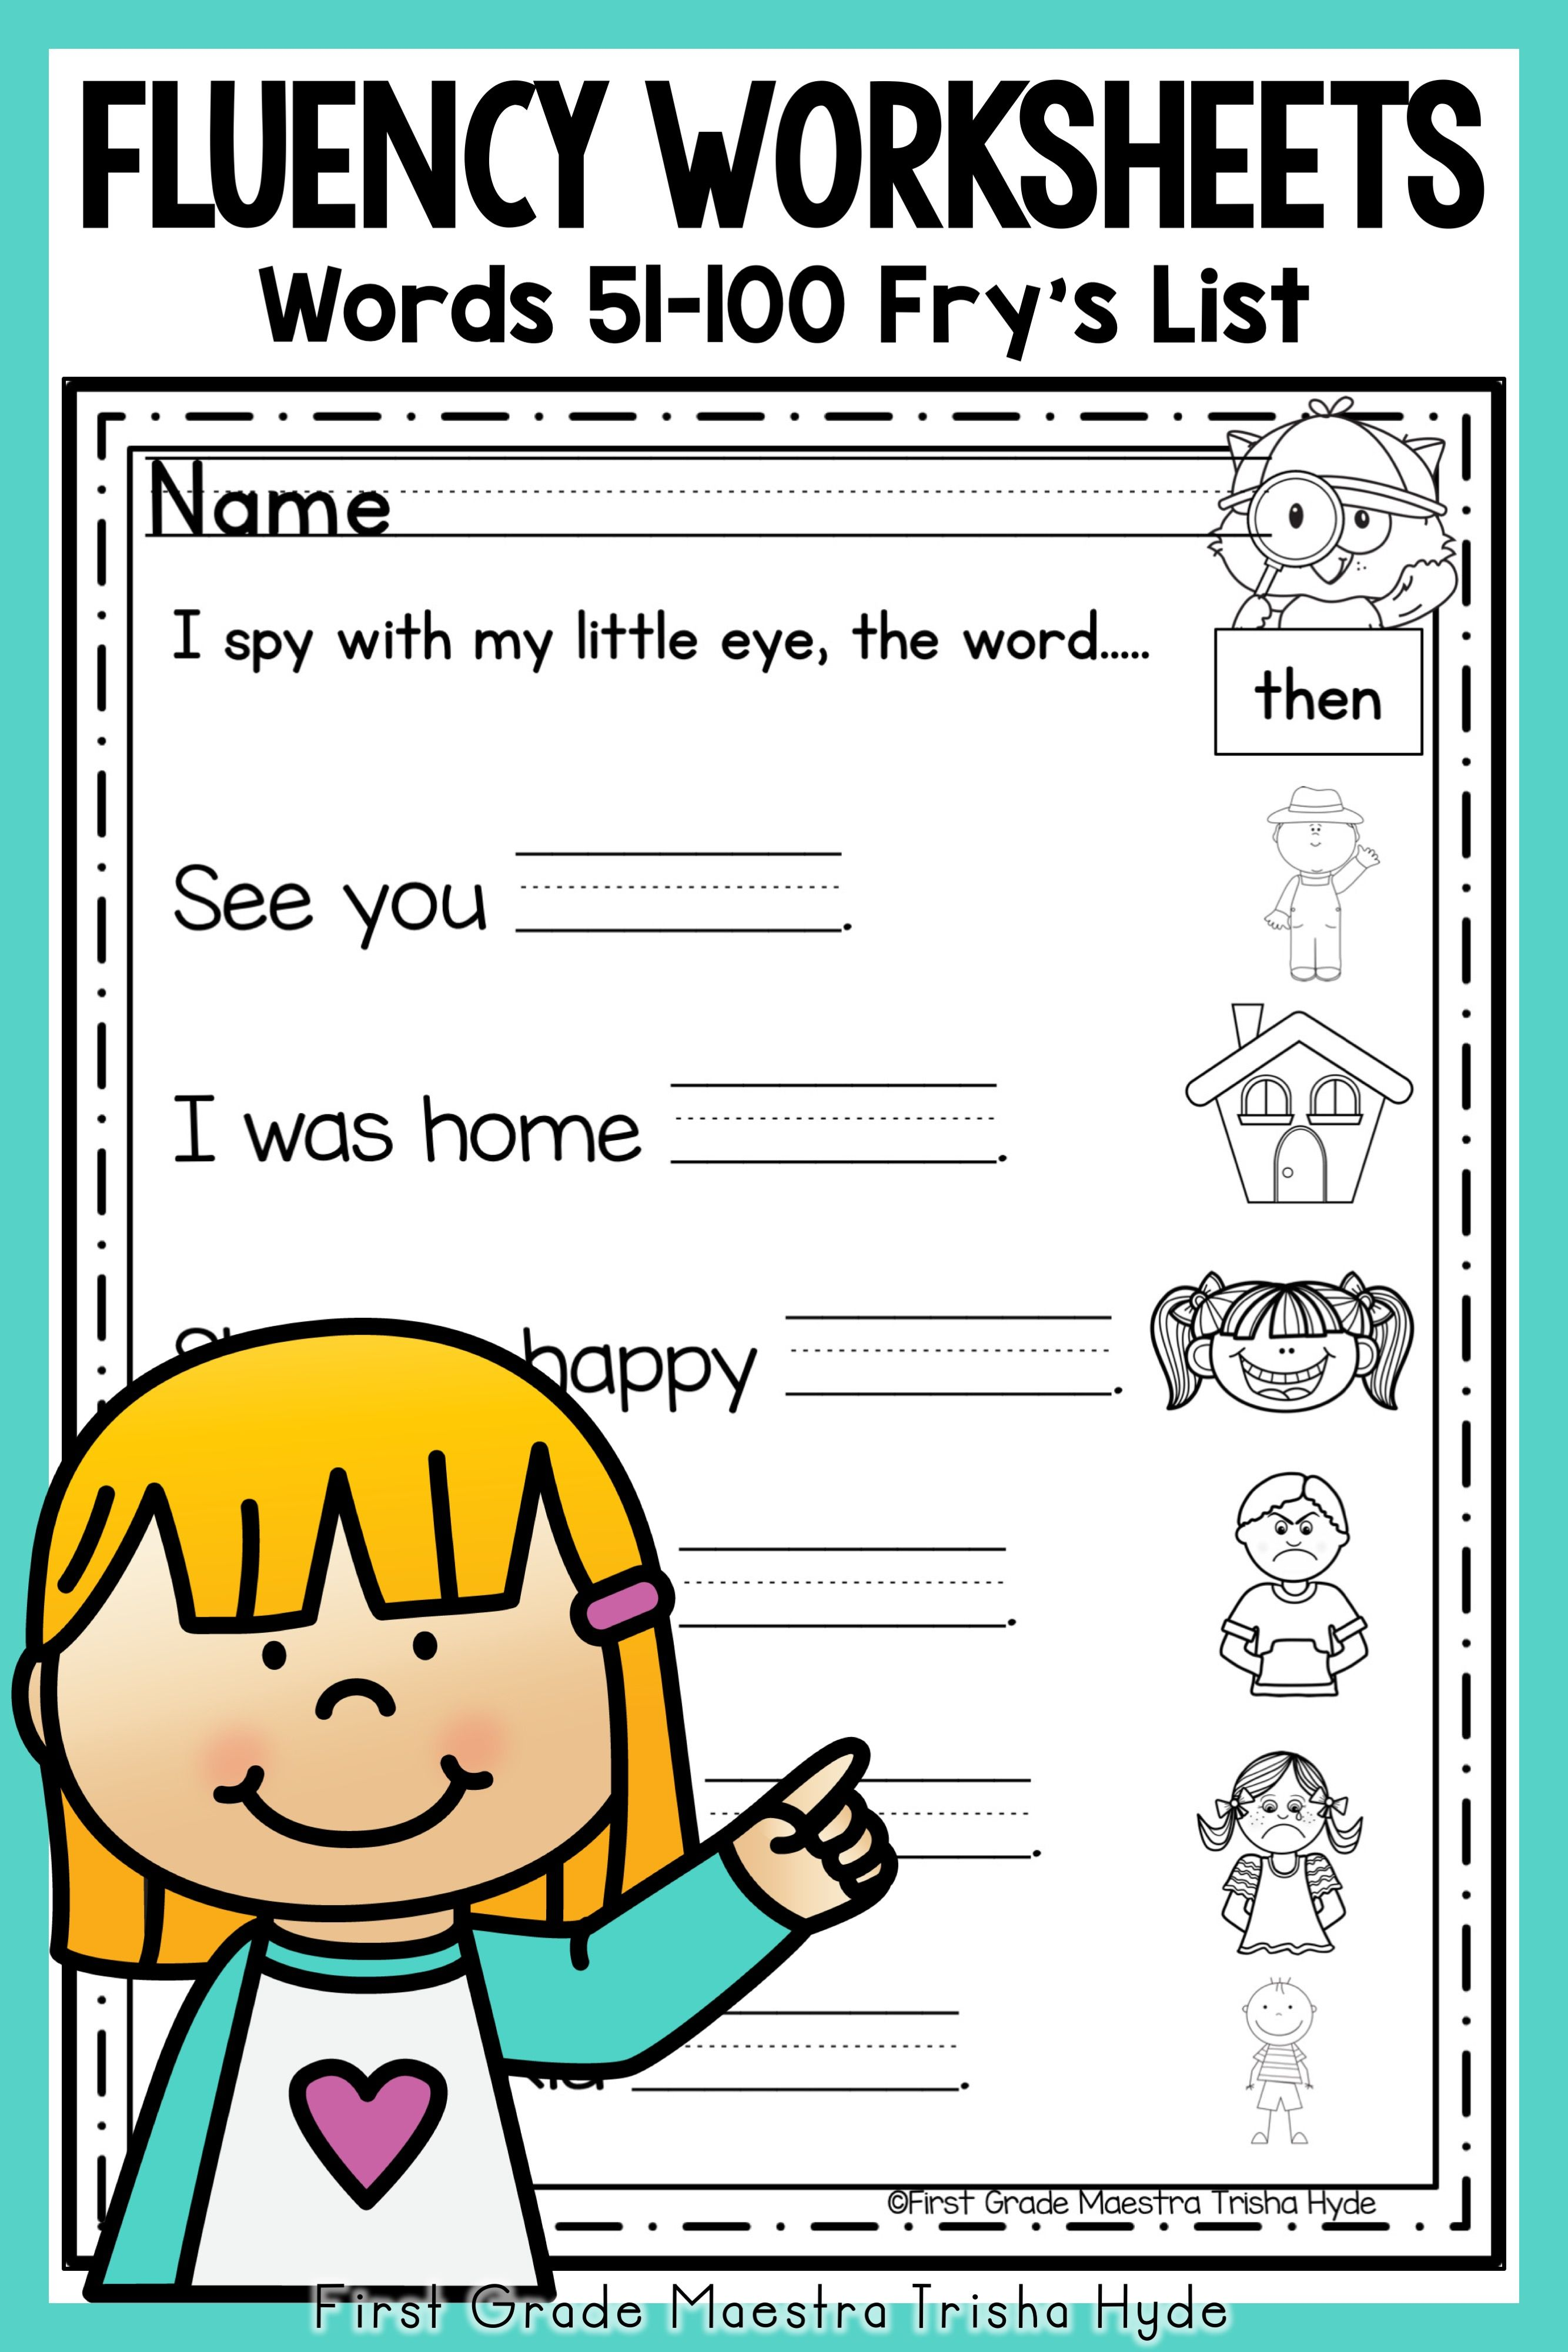 Sight Word Fluency Worksheets Fry S Words 51 100